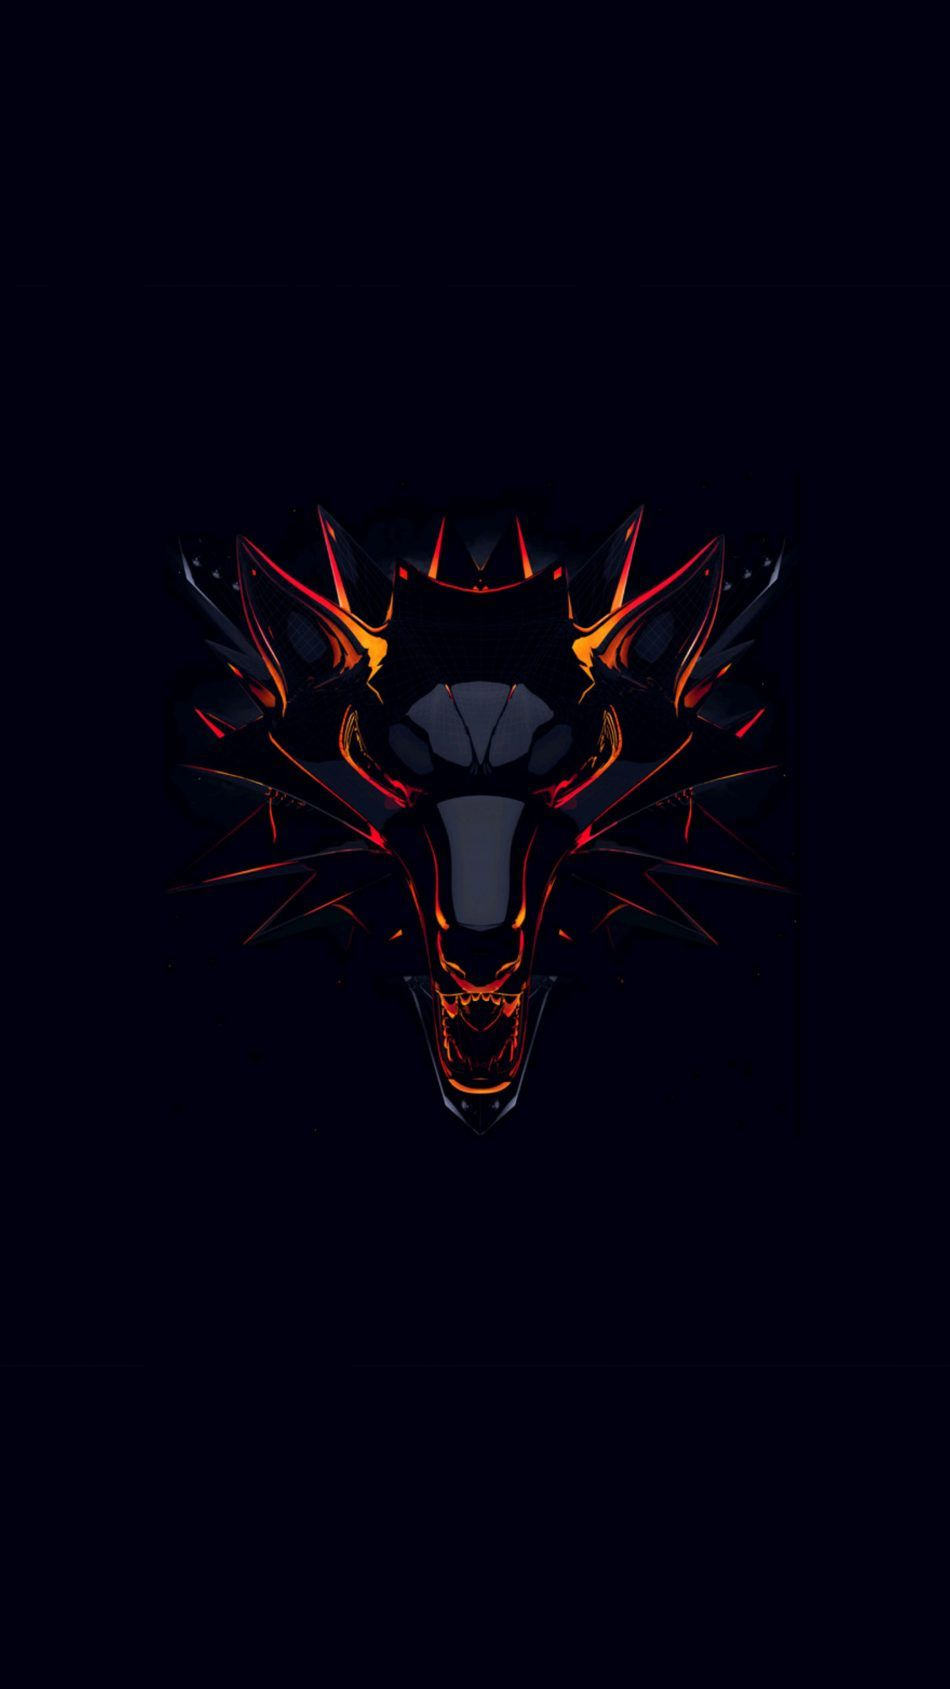 Witcher Dark Background Minimal 4k Ultra Hd Mobile 4k Dark Wallpaper For Mobile Is Popular Wallpaper Pi In 2020 4k Phone Wallpapers Dark Wallpaper Hd Dark Wallpapers